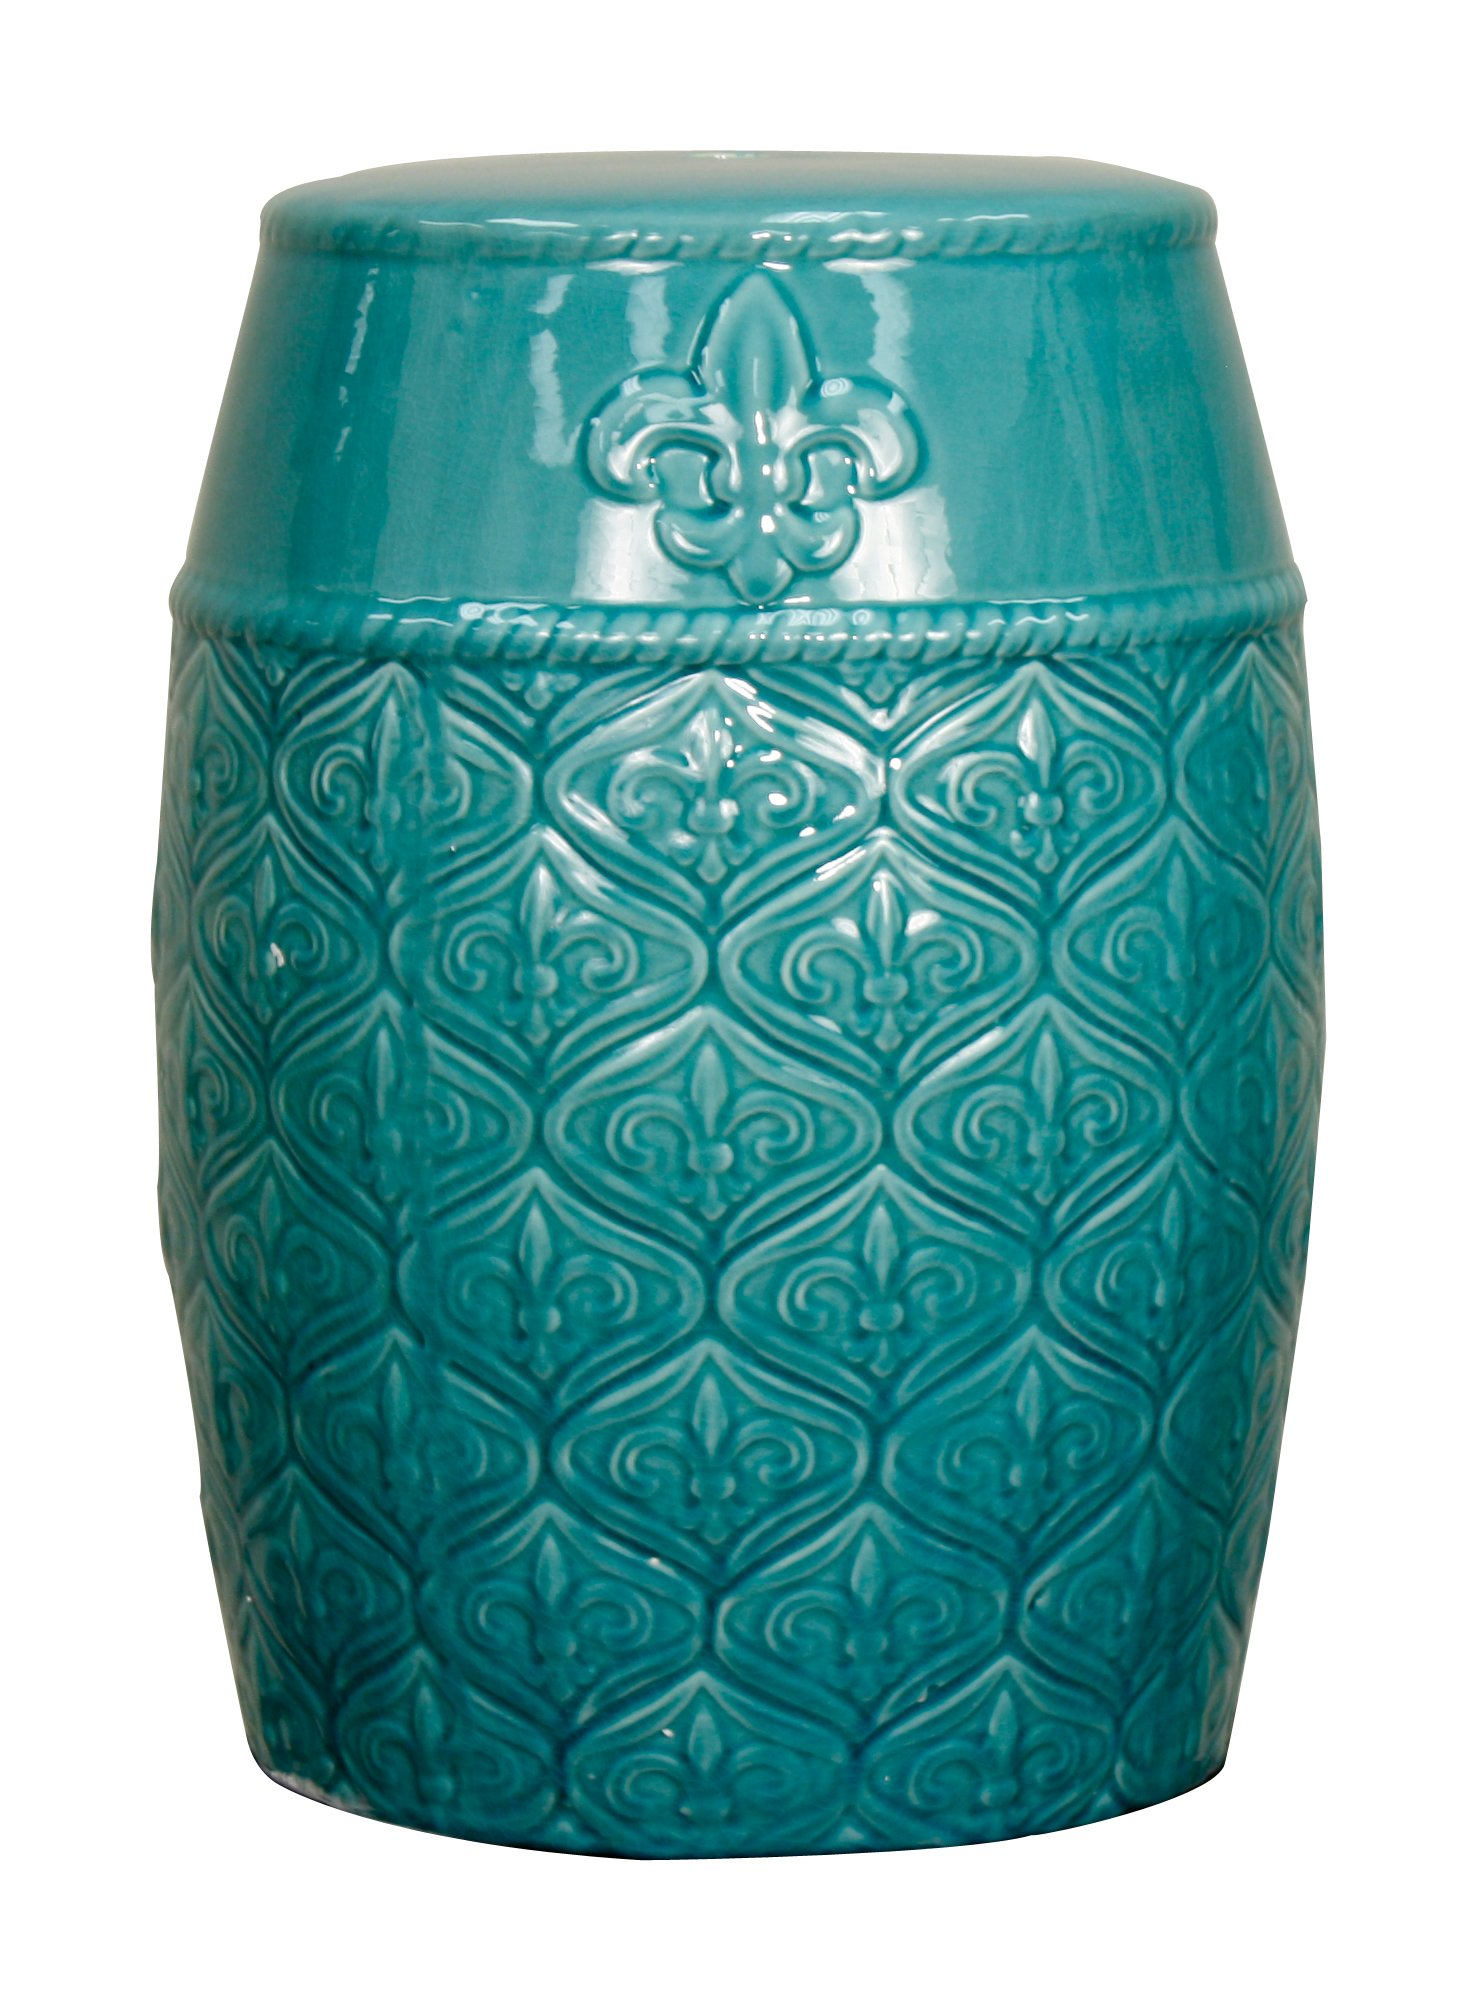 New Pacific Direct Spear Ceramic Garden Stool,Turquoise Green,Fully Assembled